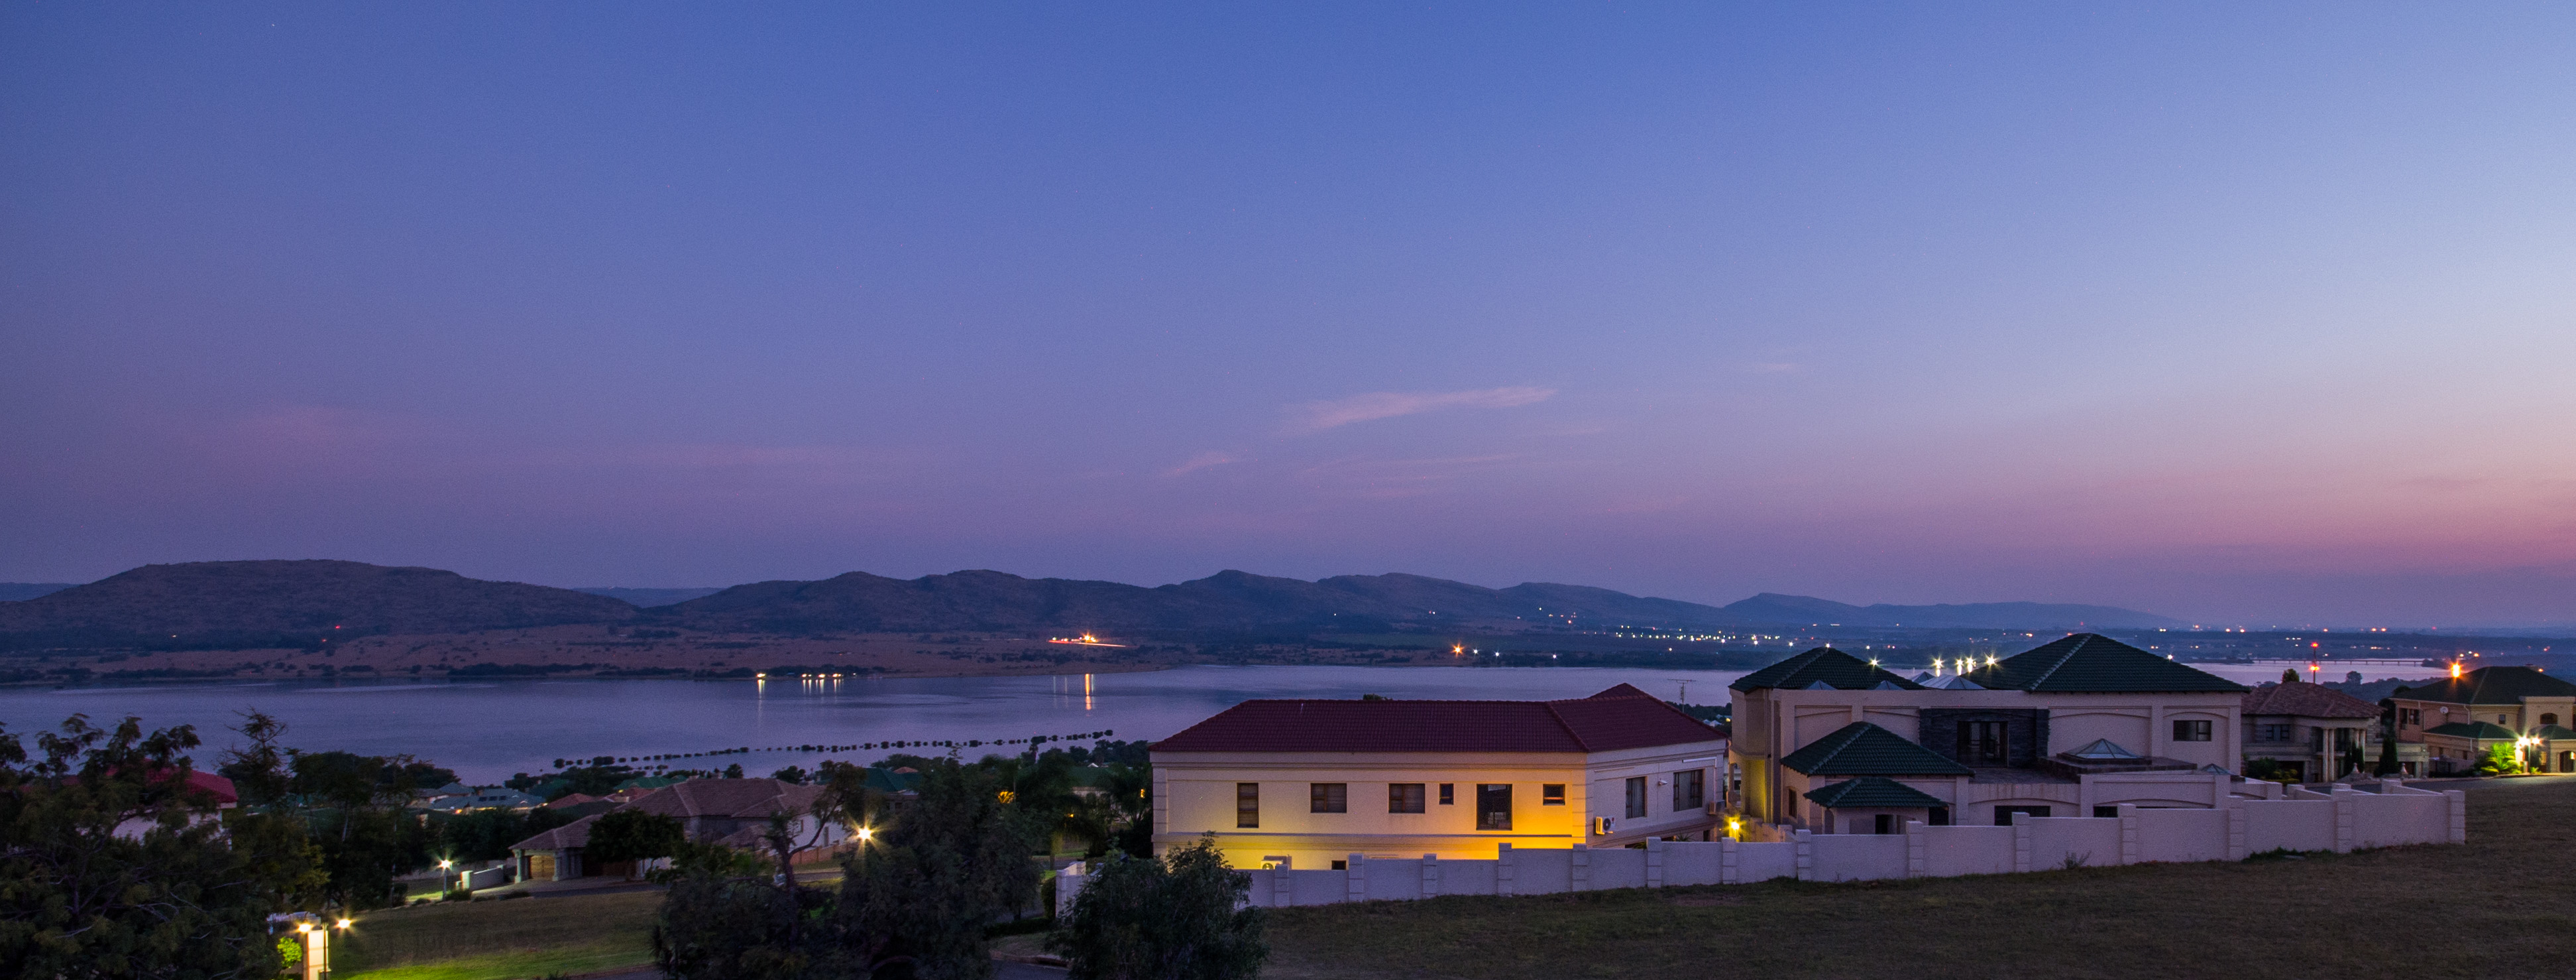 Real estate in Hartbeespoort Dam - Kosmos Ridge 3.jpg